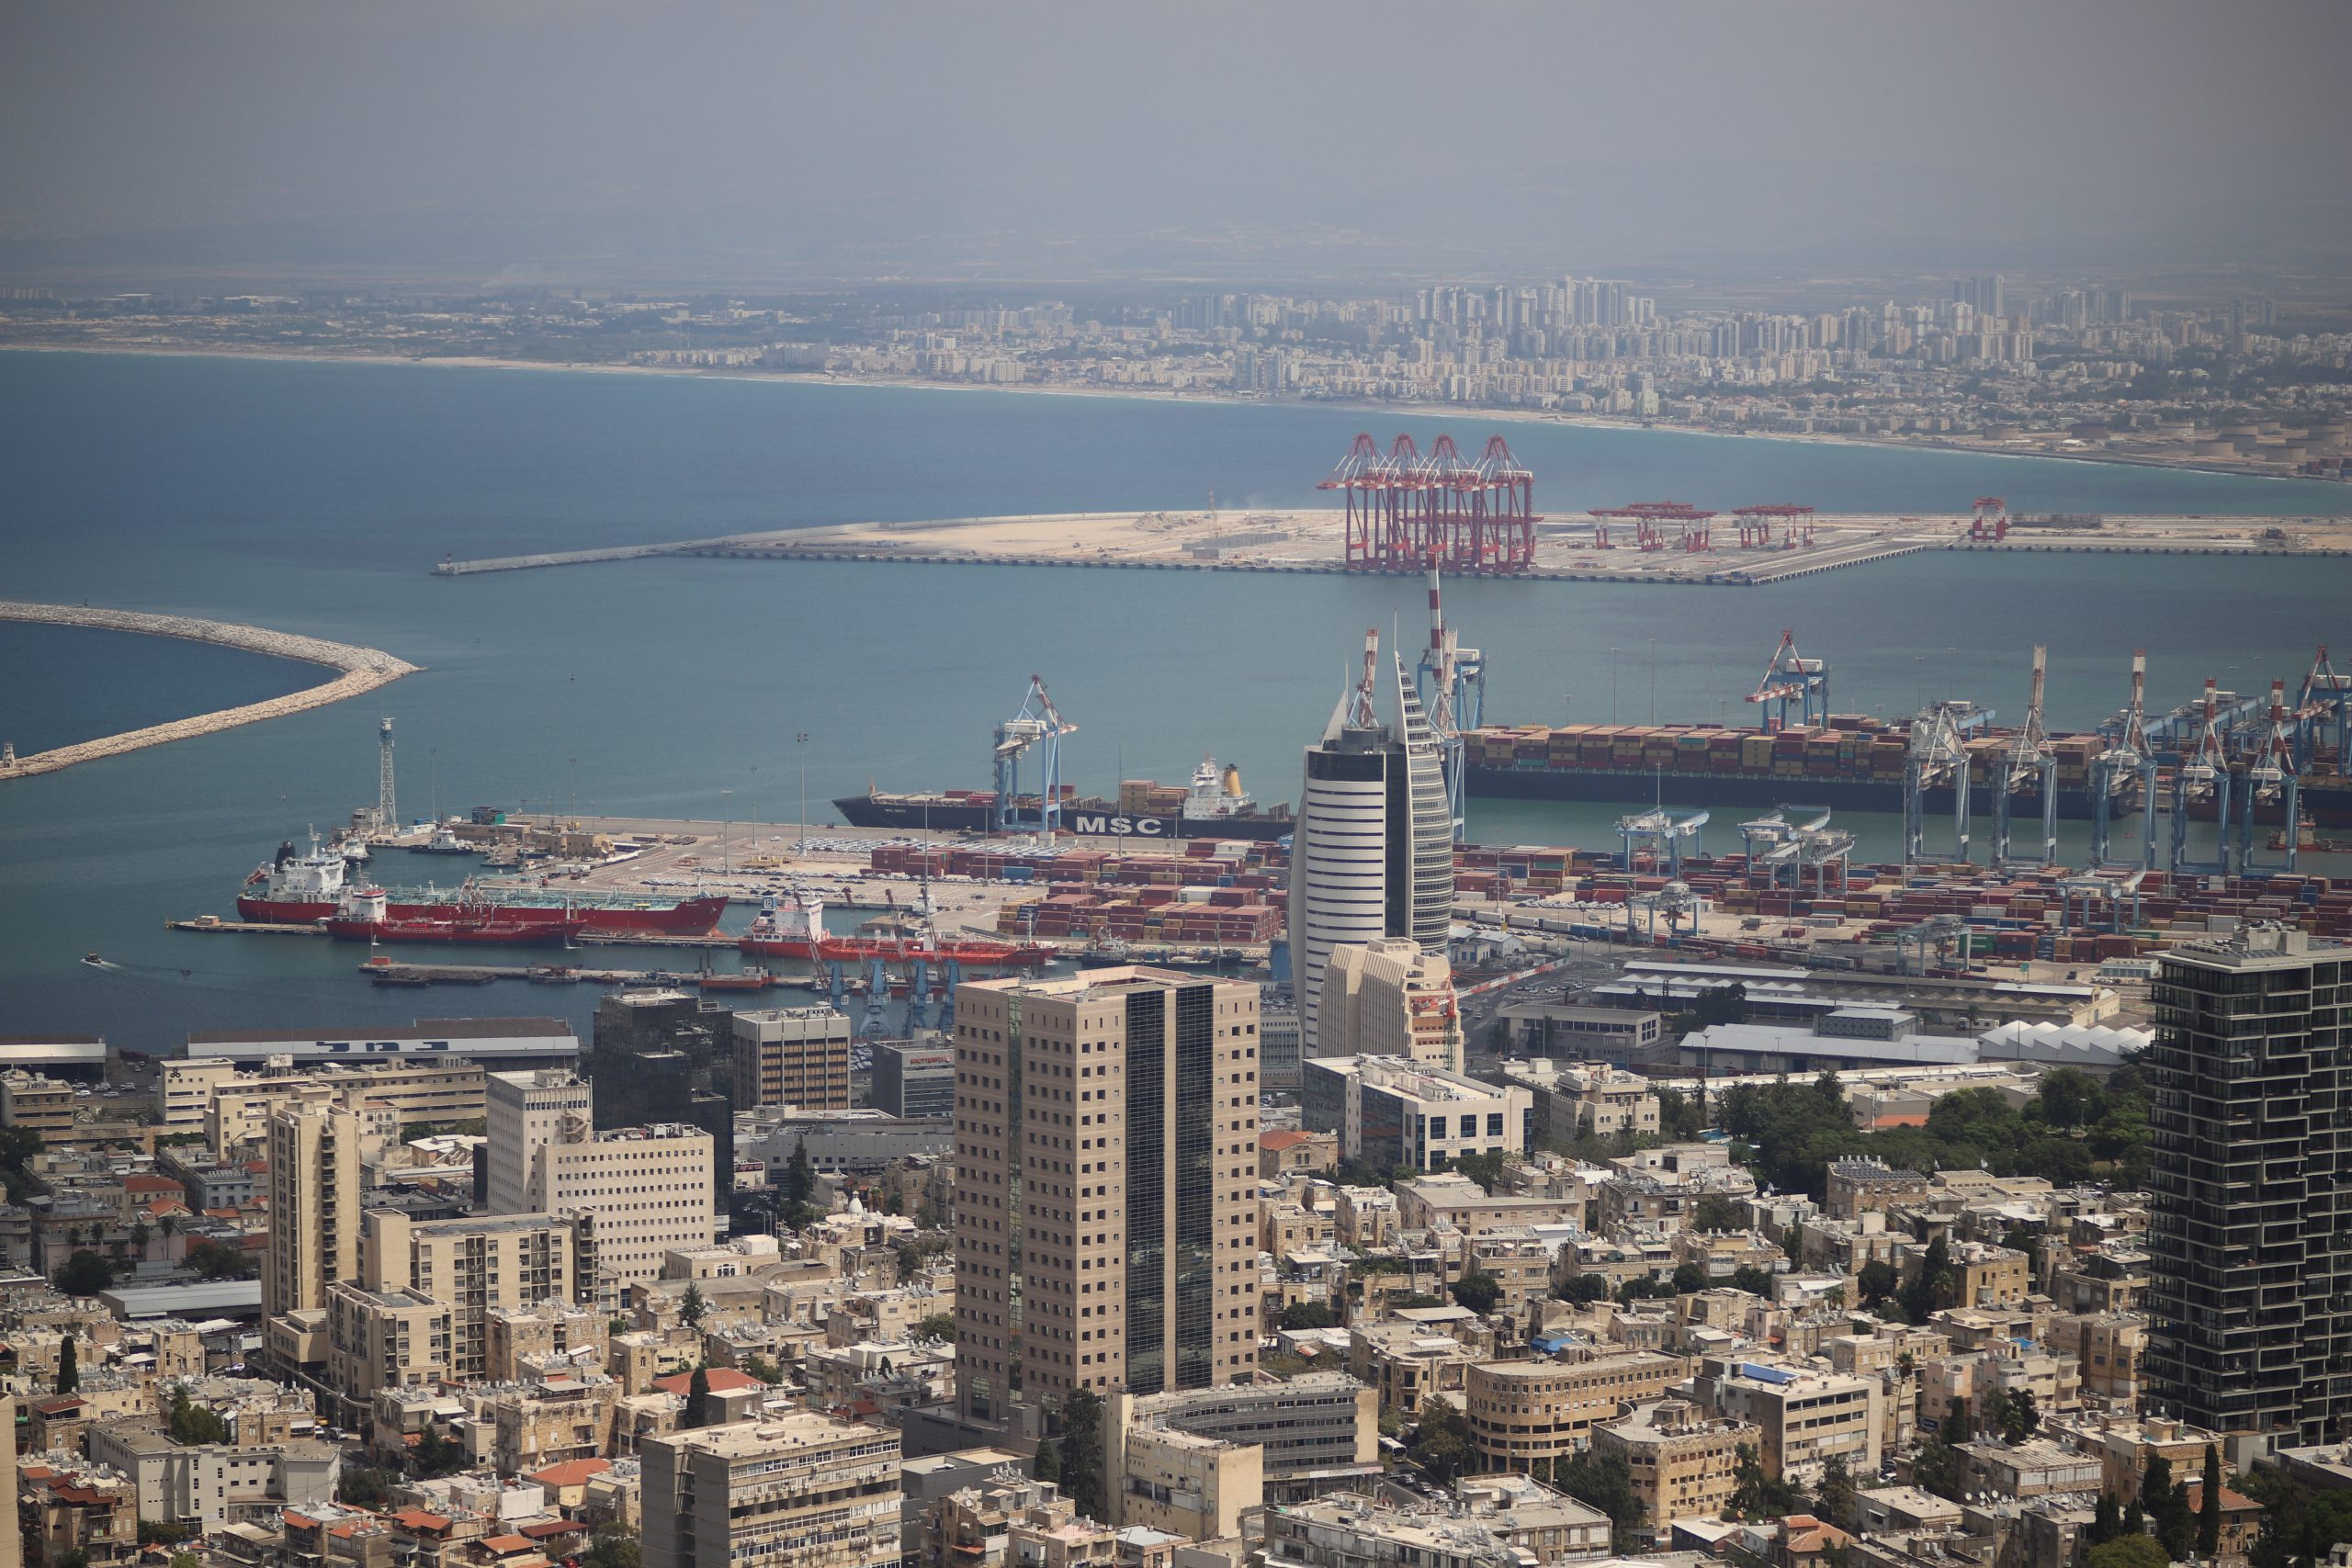 Haifa: A Tale of Two Ports